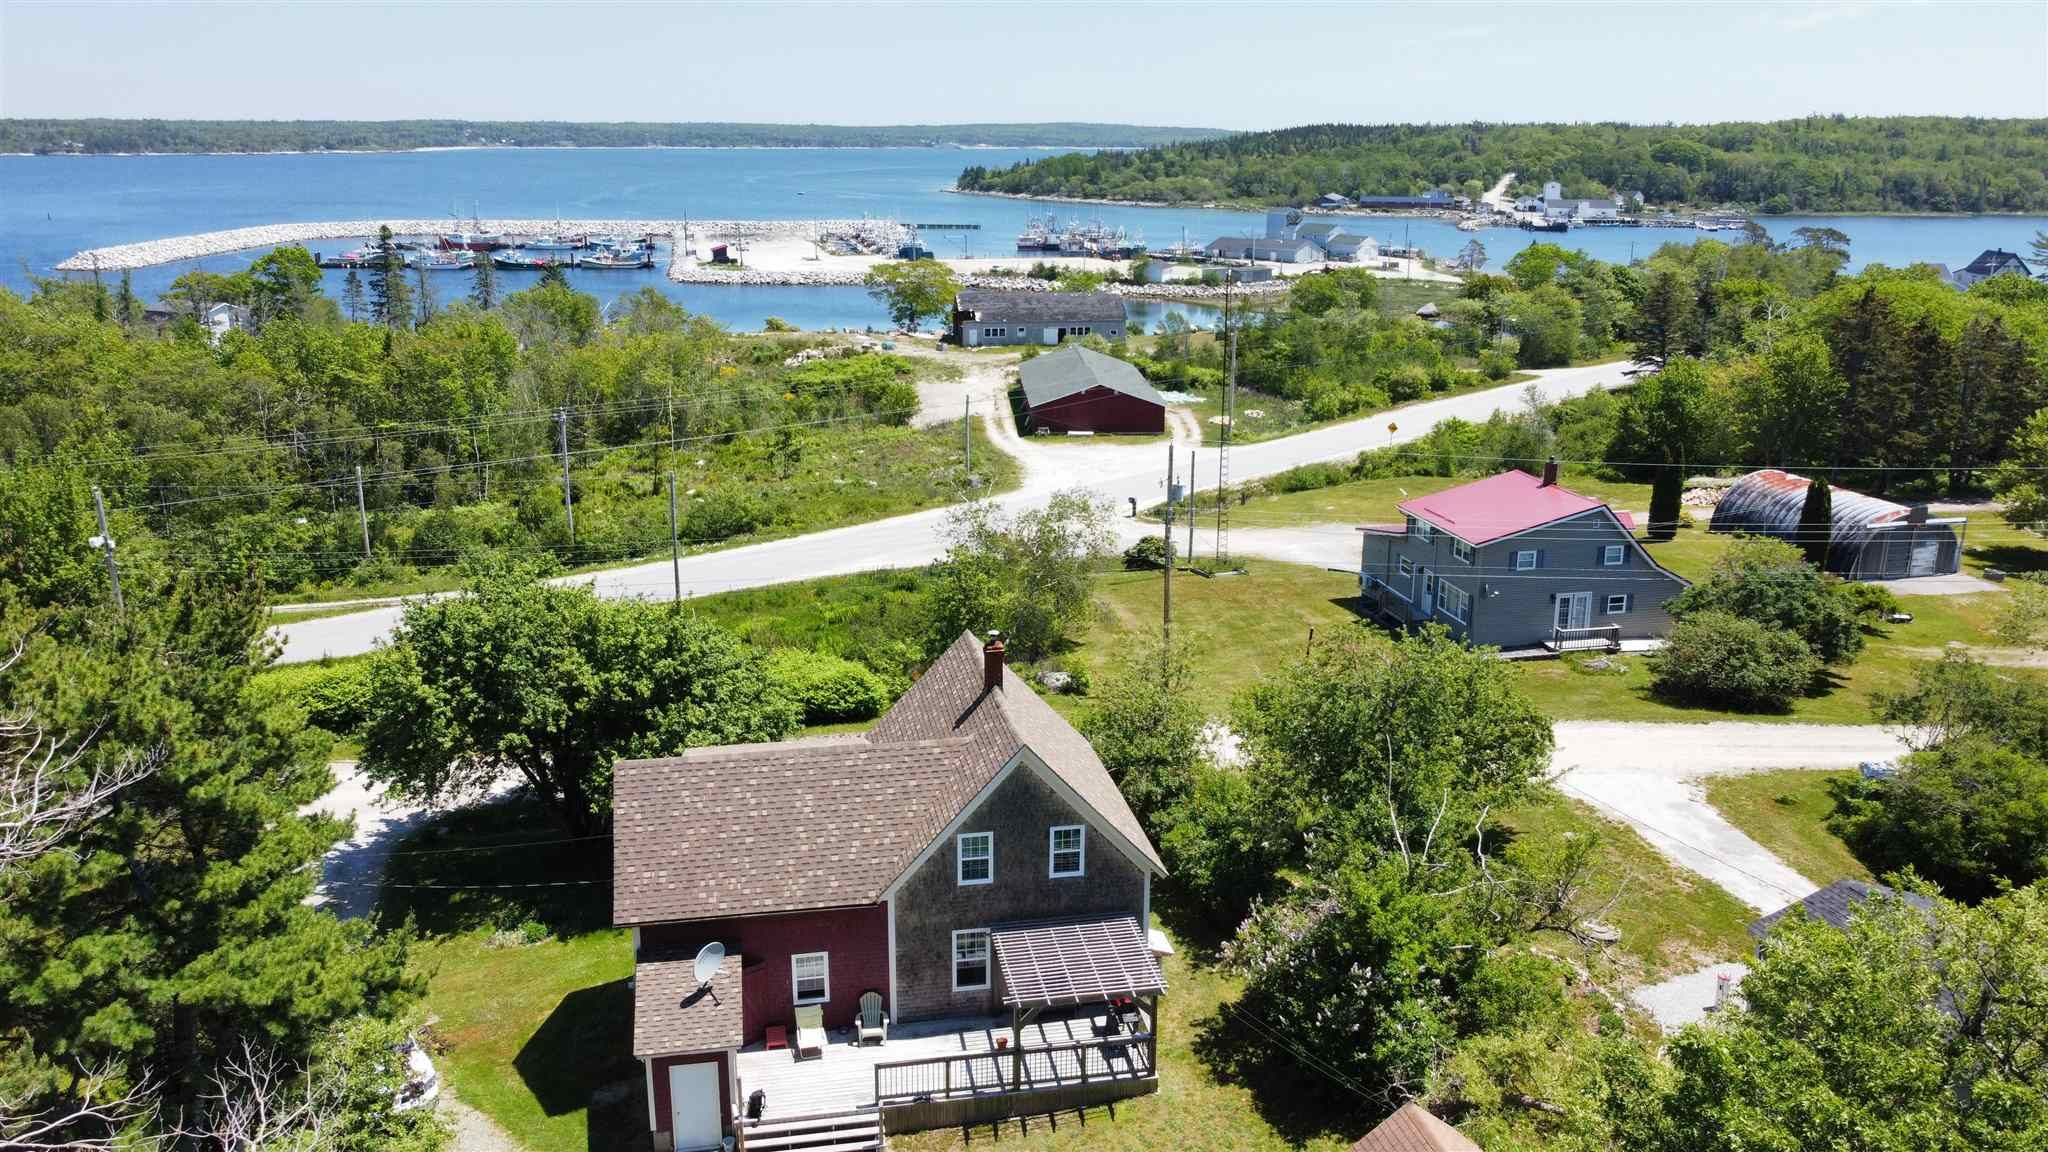 Main Photo: 12 Fire Hall Road in Gunning Cove: 407-Shelburne County Residential for sale (South Shore)  : MLS®# 202115302